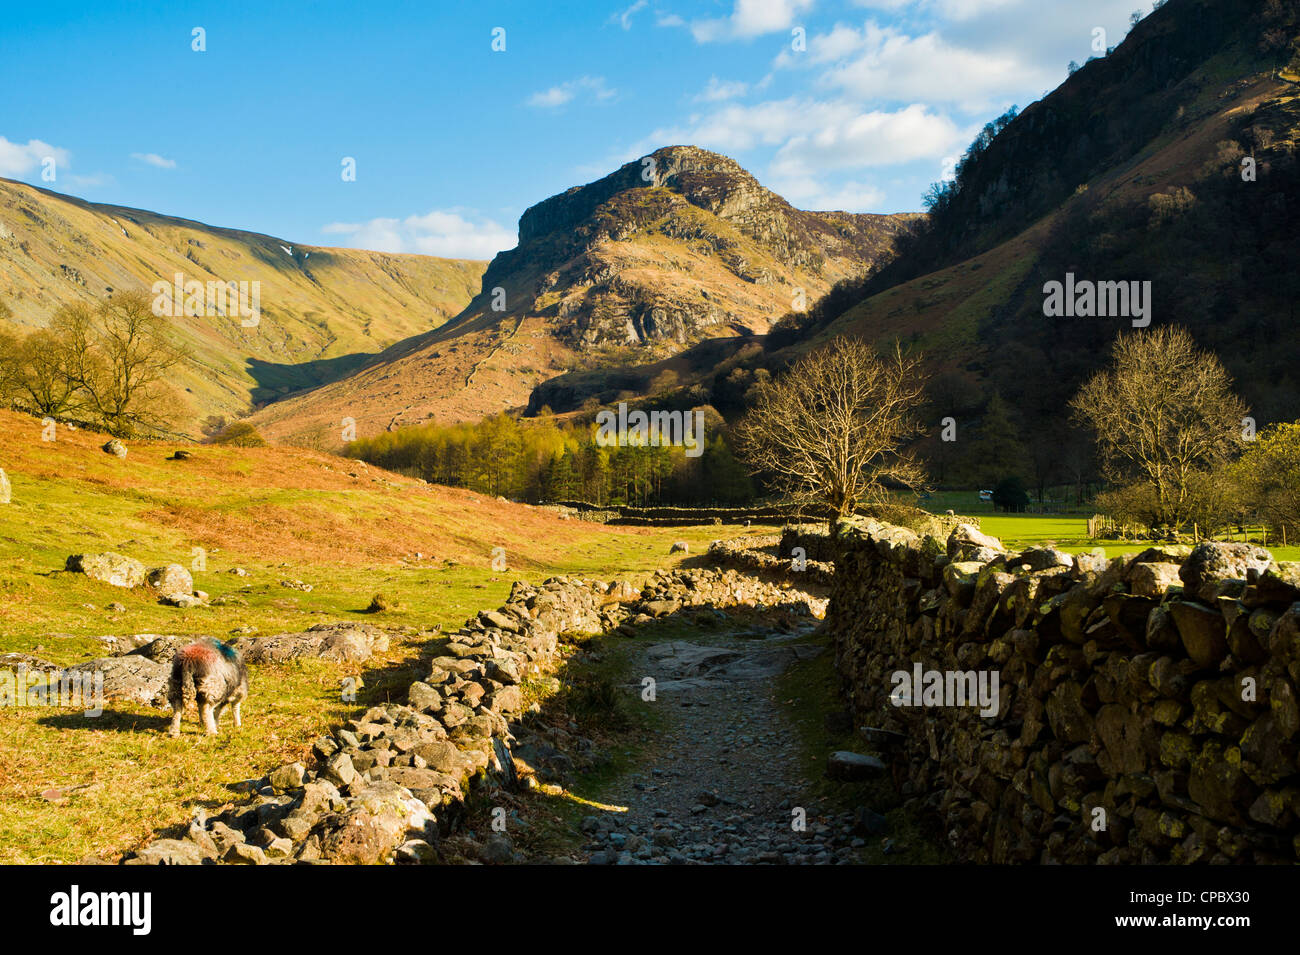 Stonethwaite valley a branch of Borrowdale Lake District looking towards Eagle Crag - Stock Image